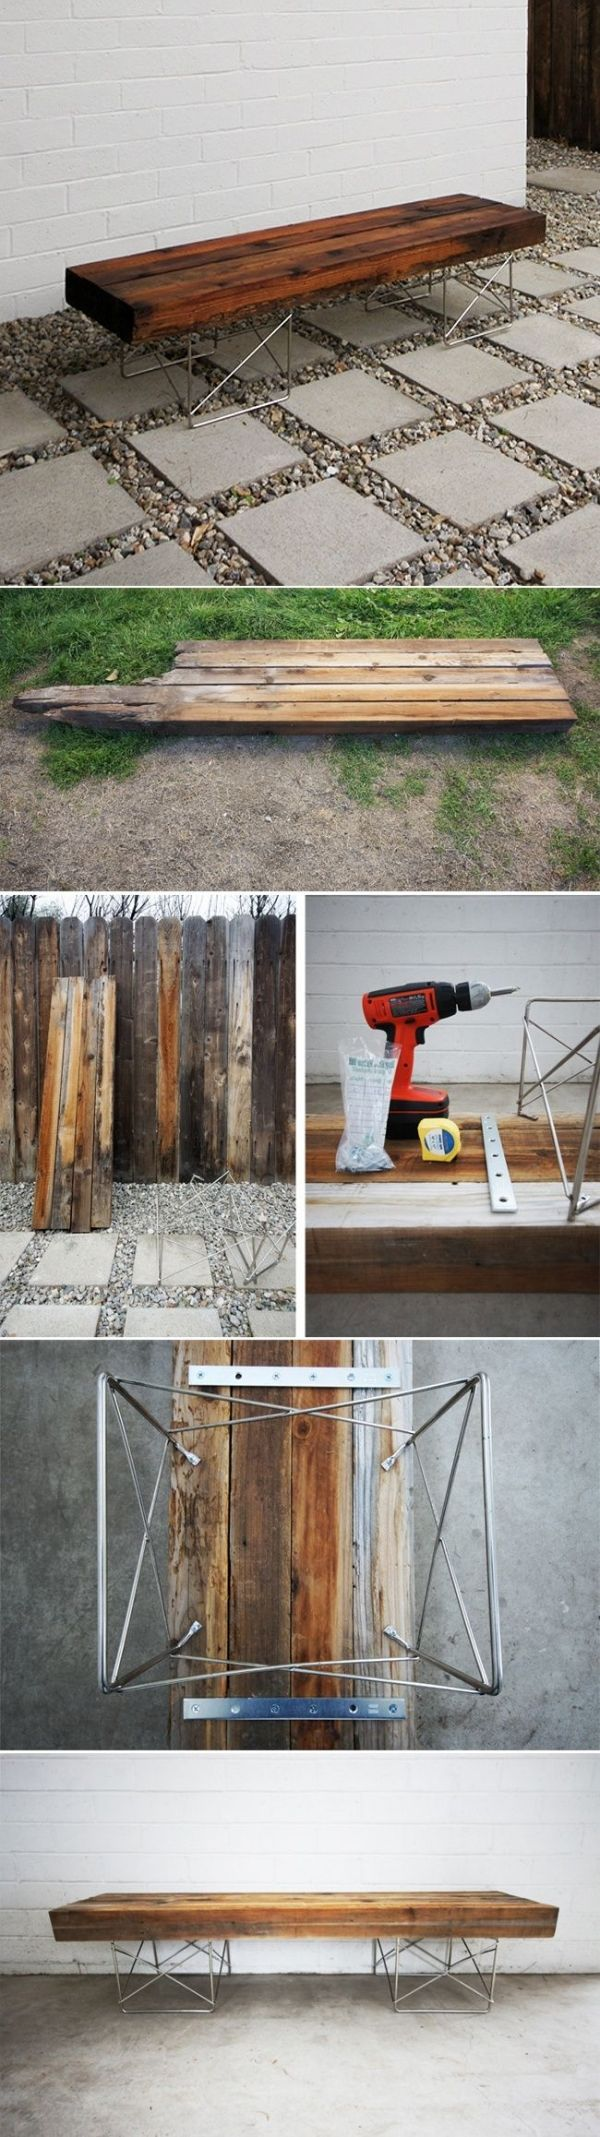 11 Super Cool DIY Backyard Furniture Projects • Lots of Ideas and Tutorials! Including, from 'the brick house', this very cool diy fence bench made from old fence boards and modern mid century legs. Love this! by Raelynn8